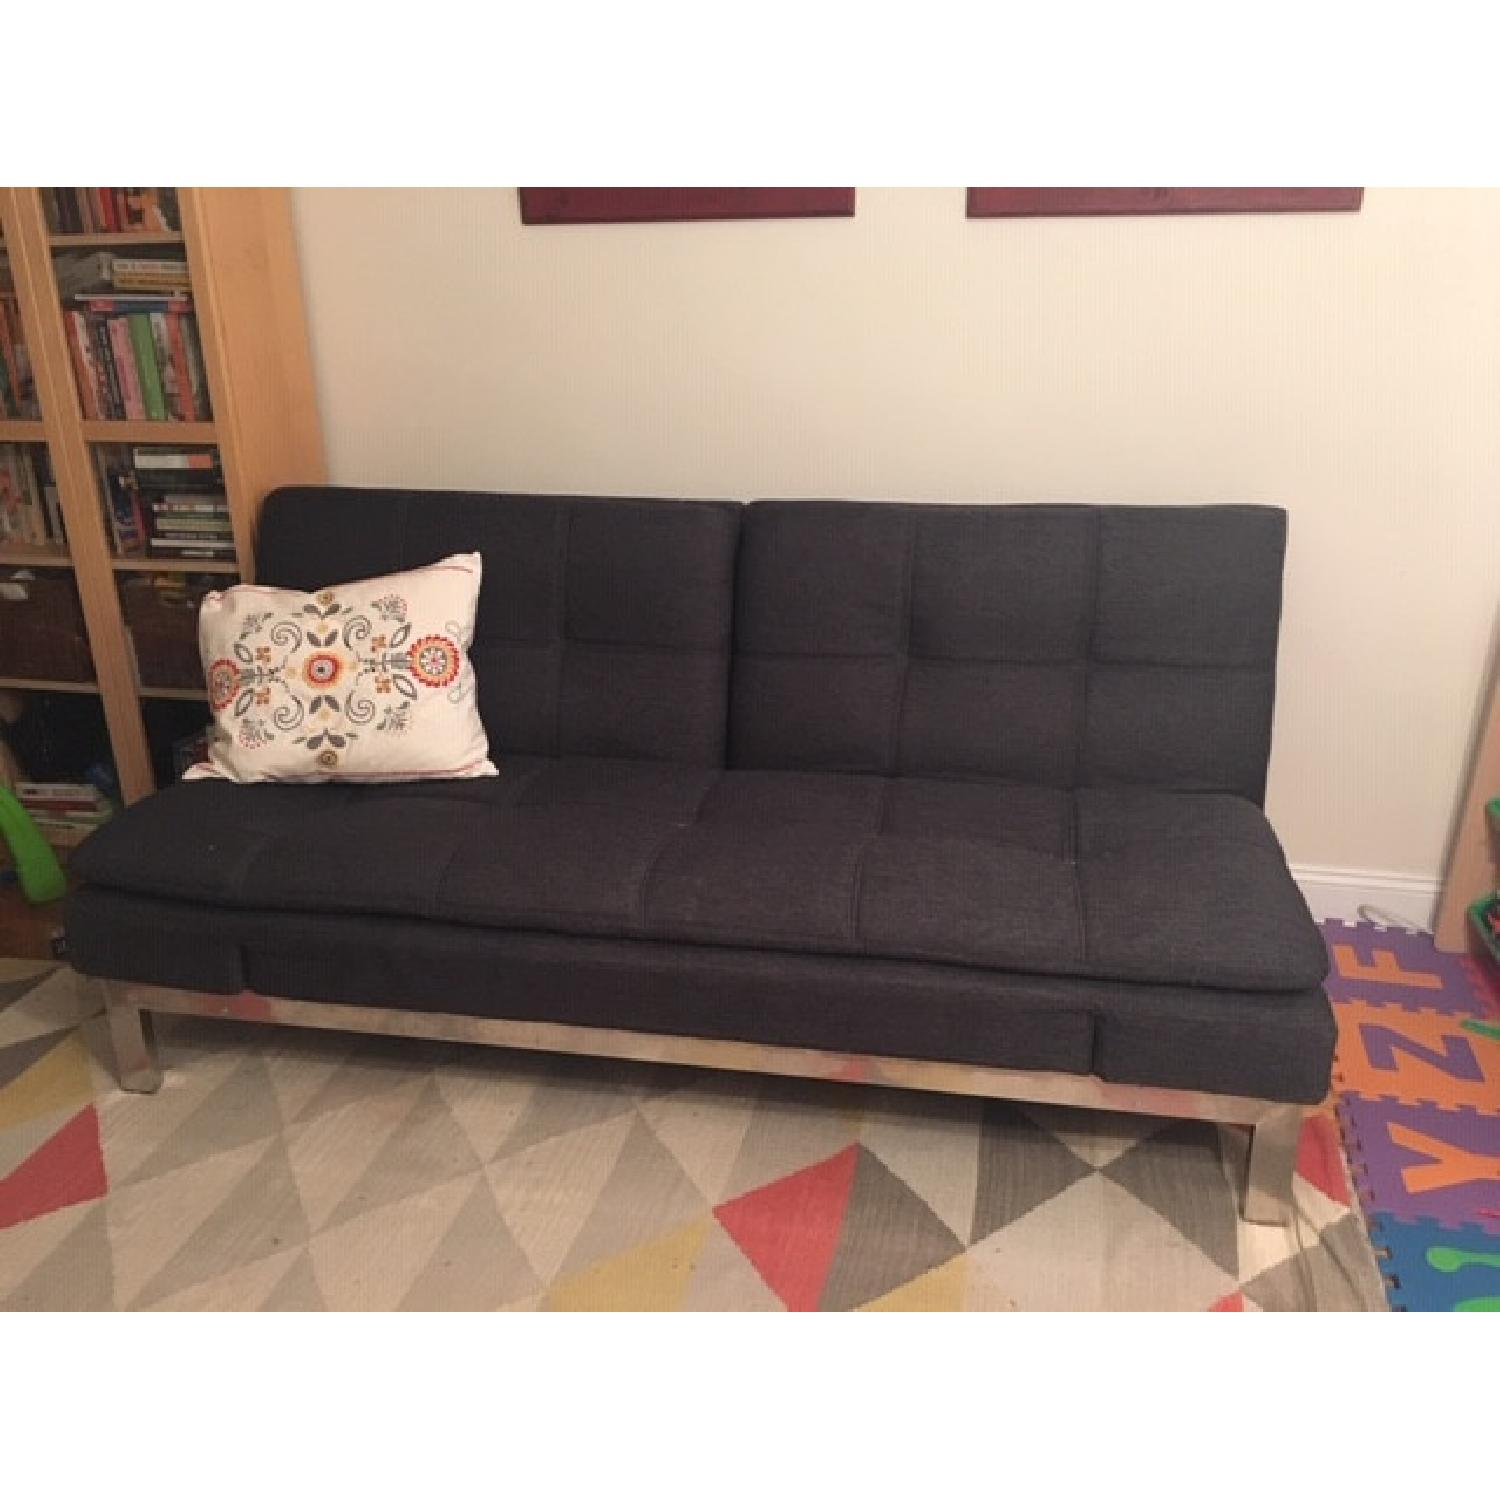 Lifestyle Solutions Serta Convertible Sofa - image-1